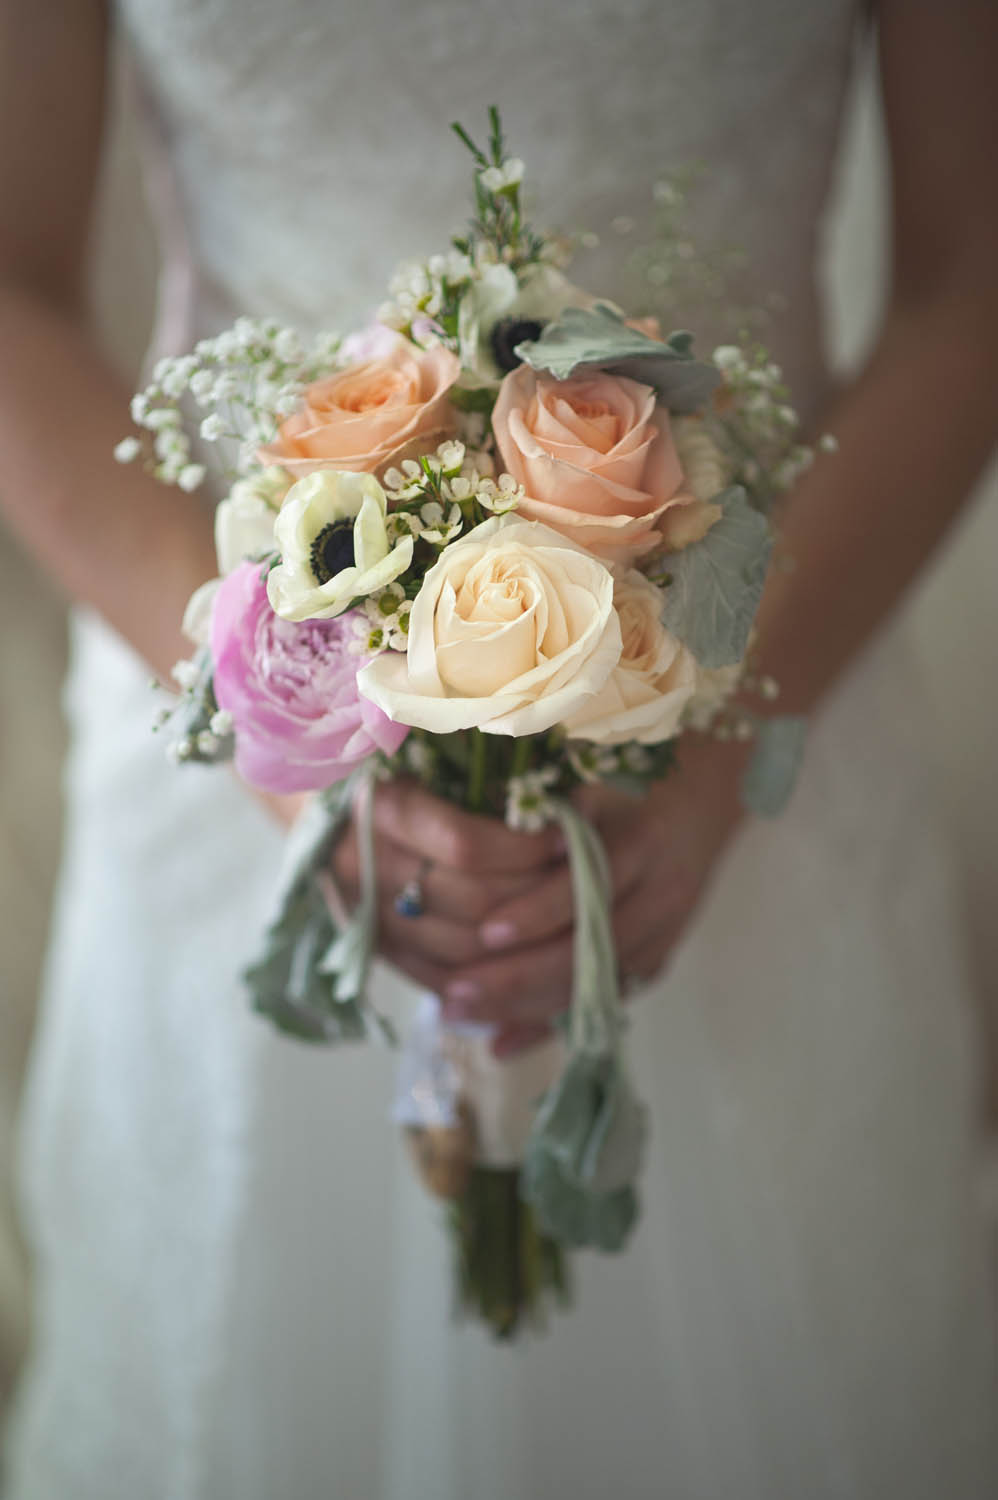 vintage-wedding-bouquet-ides-ian-andrew-photography-022.jpg